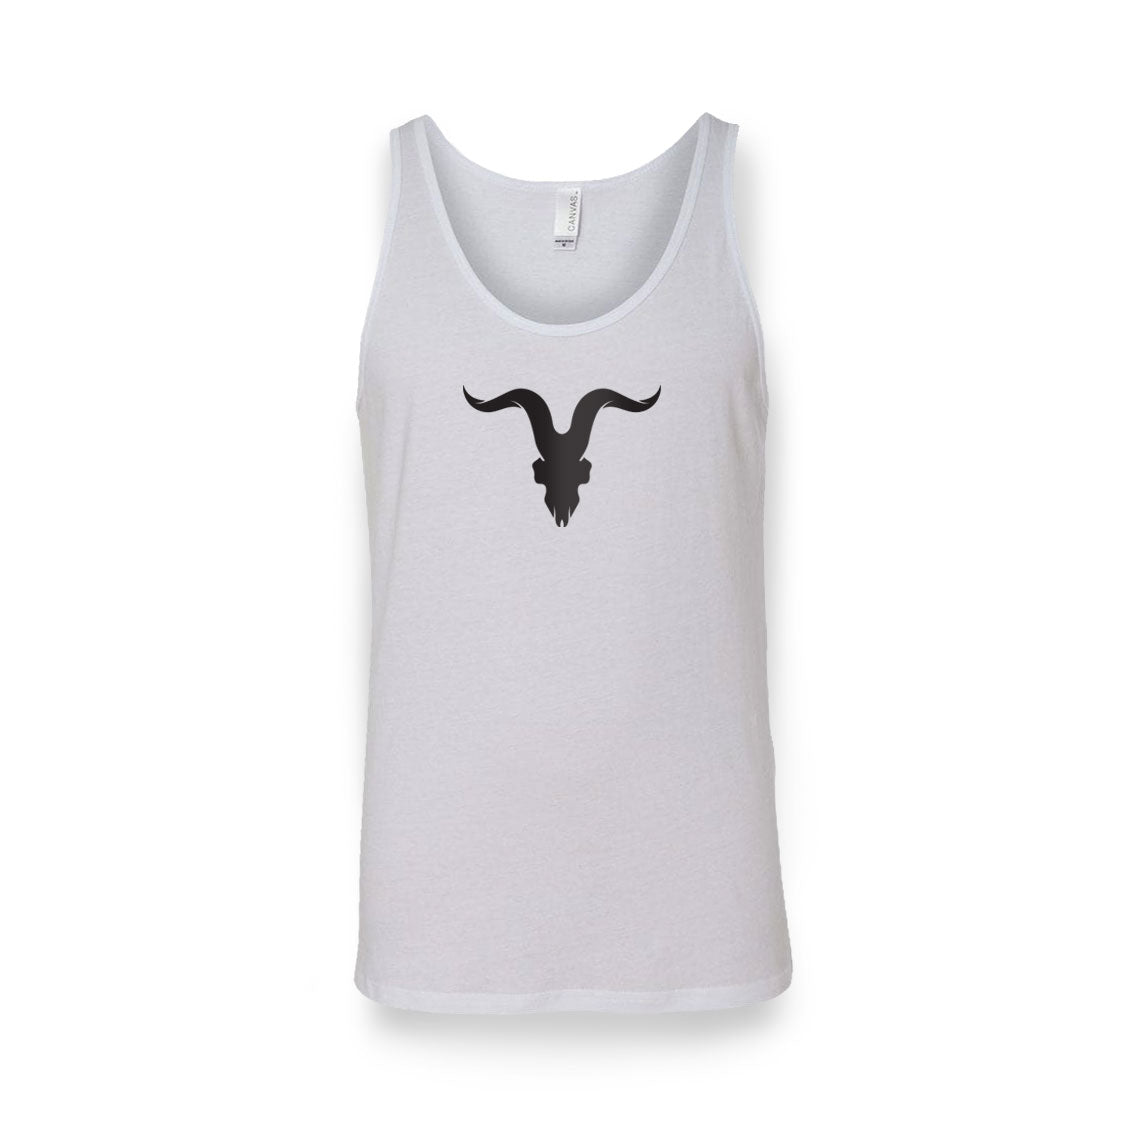 Ignite Premium Collection 'Ready for Summer' Tanks - White with Black Logo